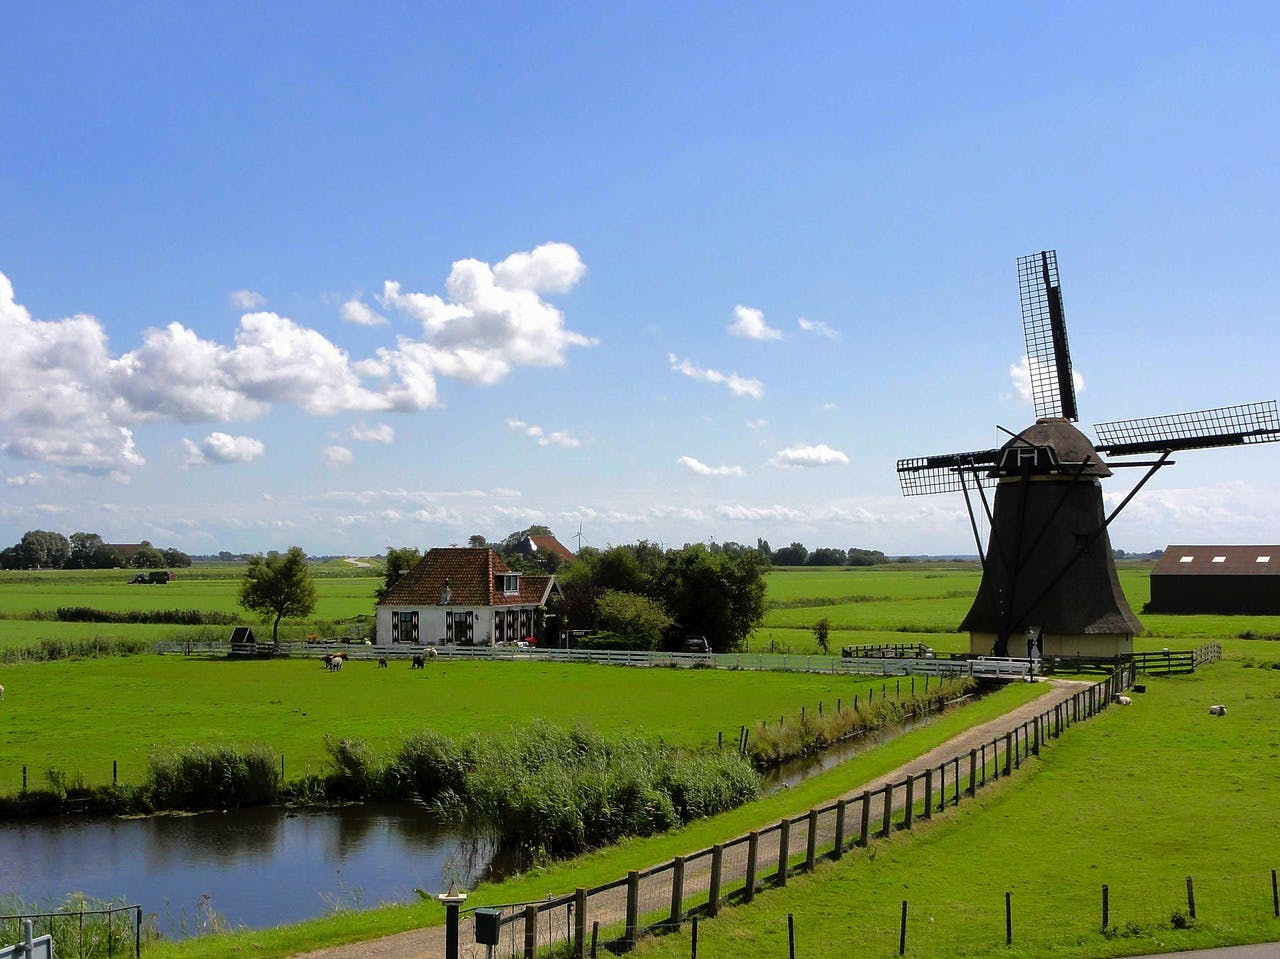 Campercontact country information - Mills in the Dutch landscape